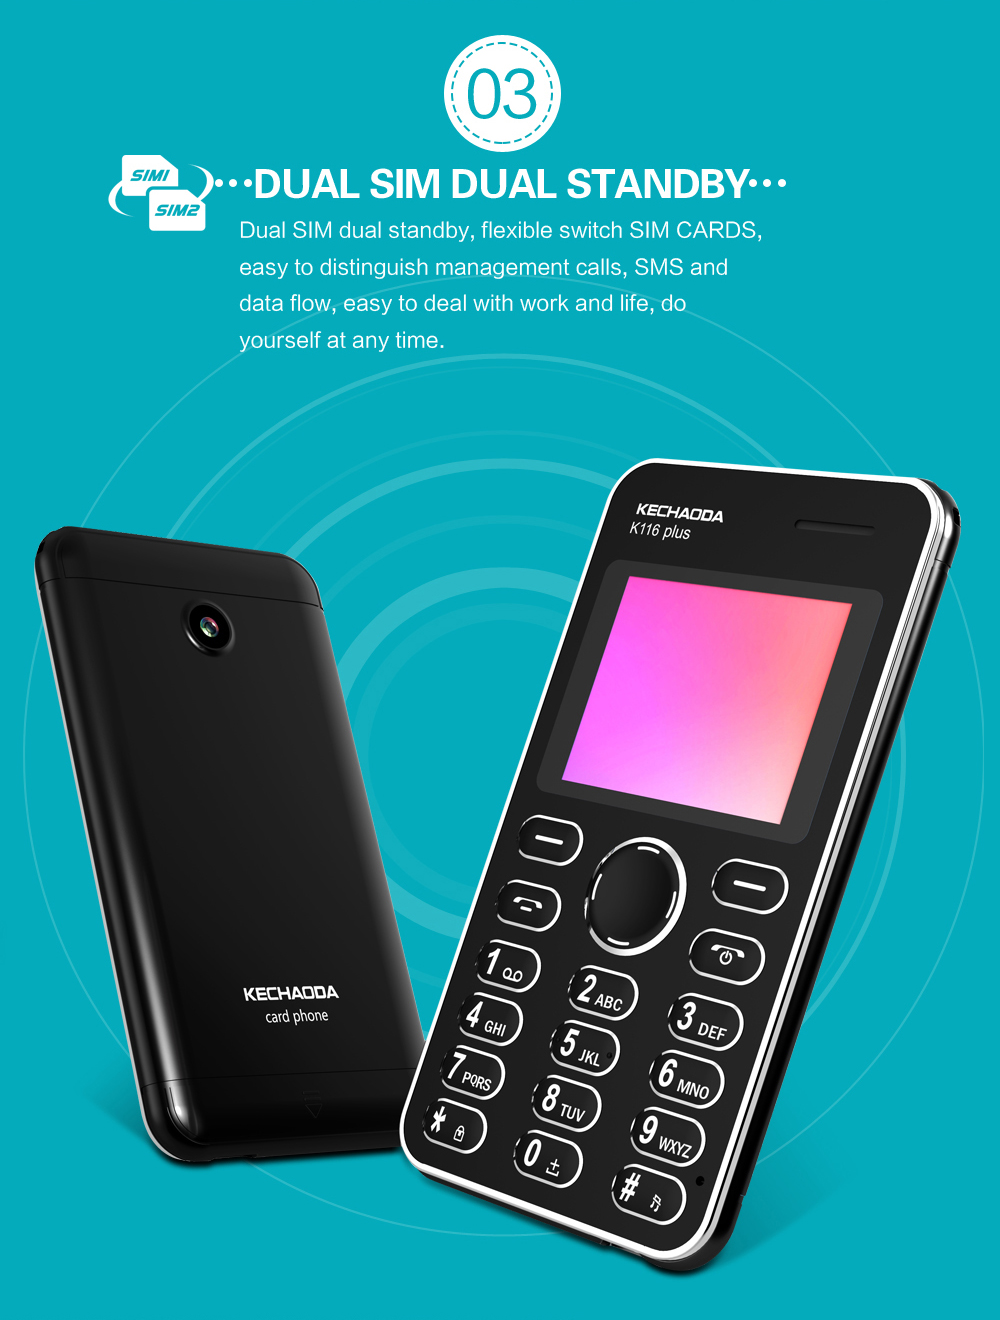 KECHAODA K116 plus Ultra-thin 1.8 inch Dual SIM dual standby Mini Polymer Battery Card Phone Mobile Phone